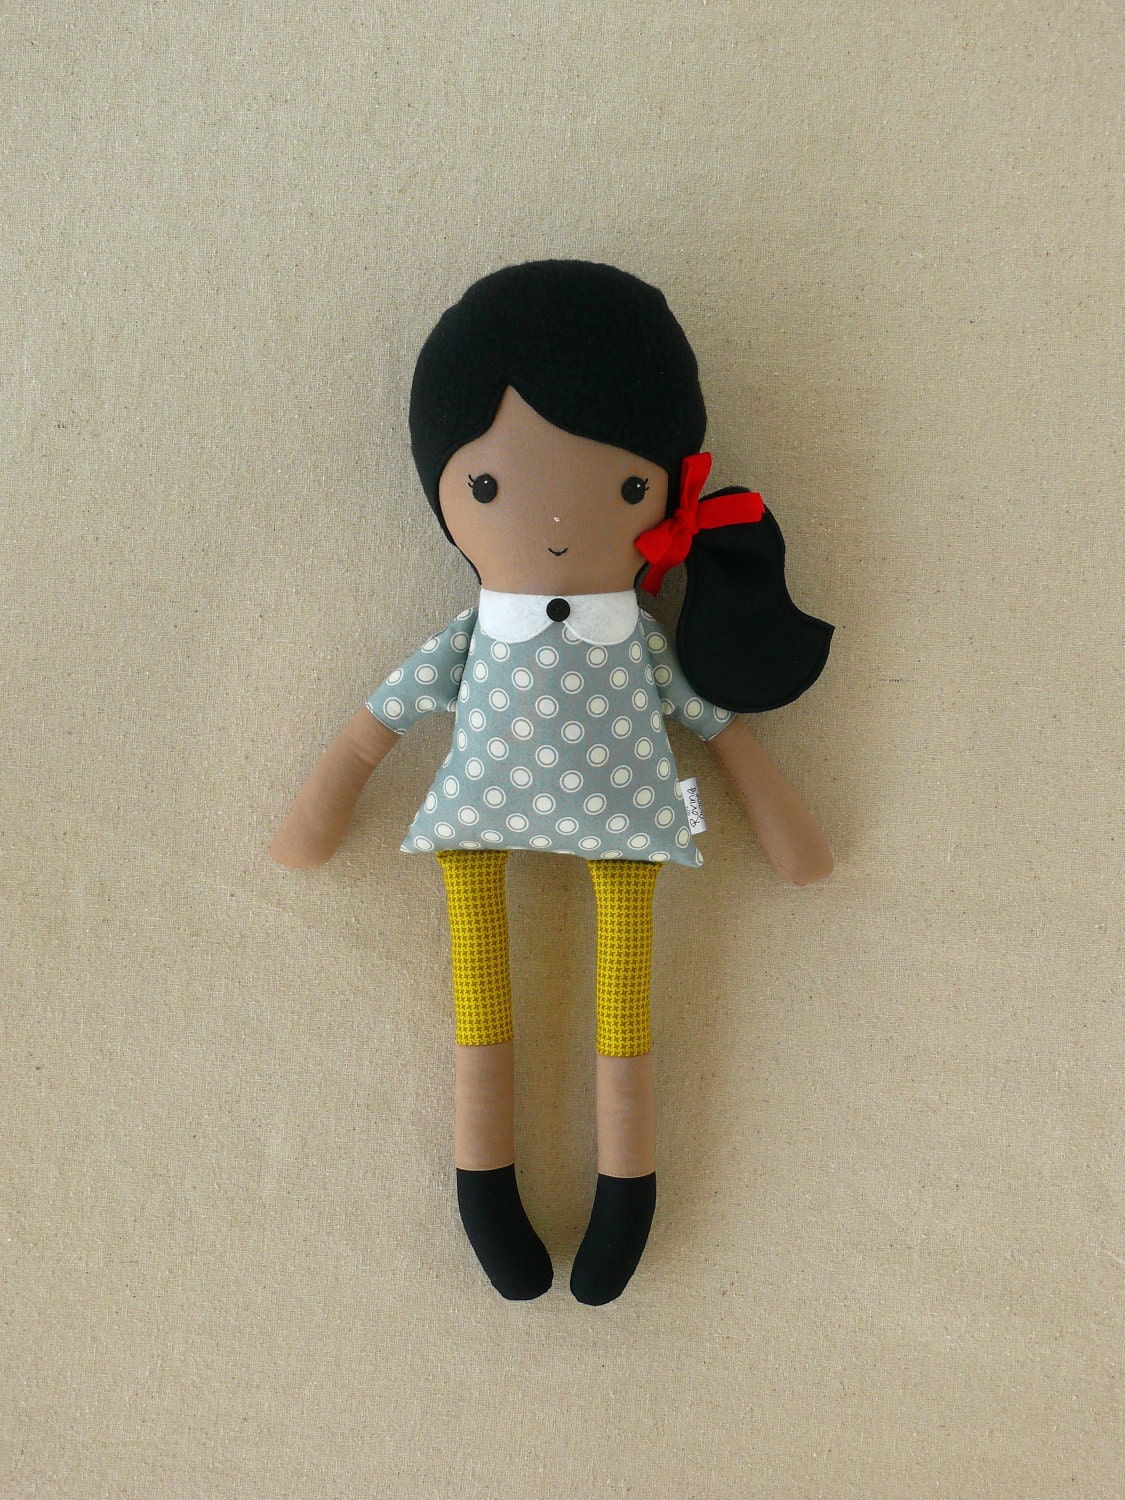 Fabric Doll Rag Doll With Black Hair In Gray Dot Top